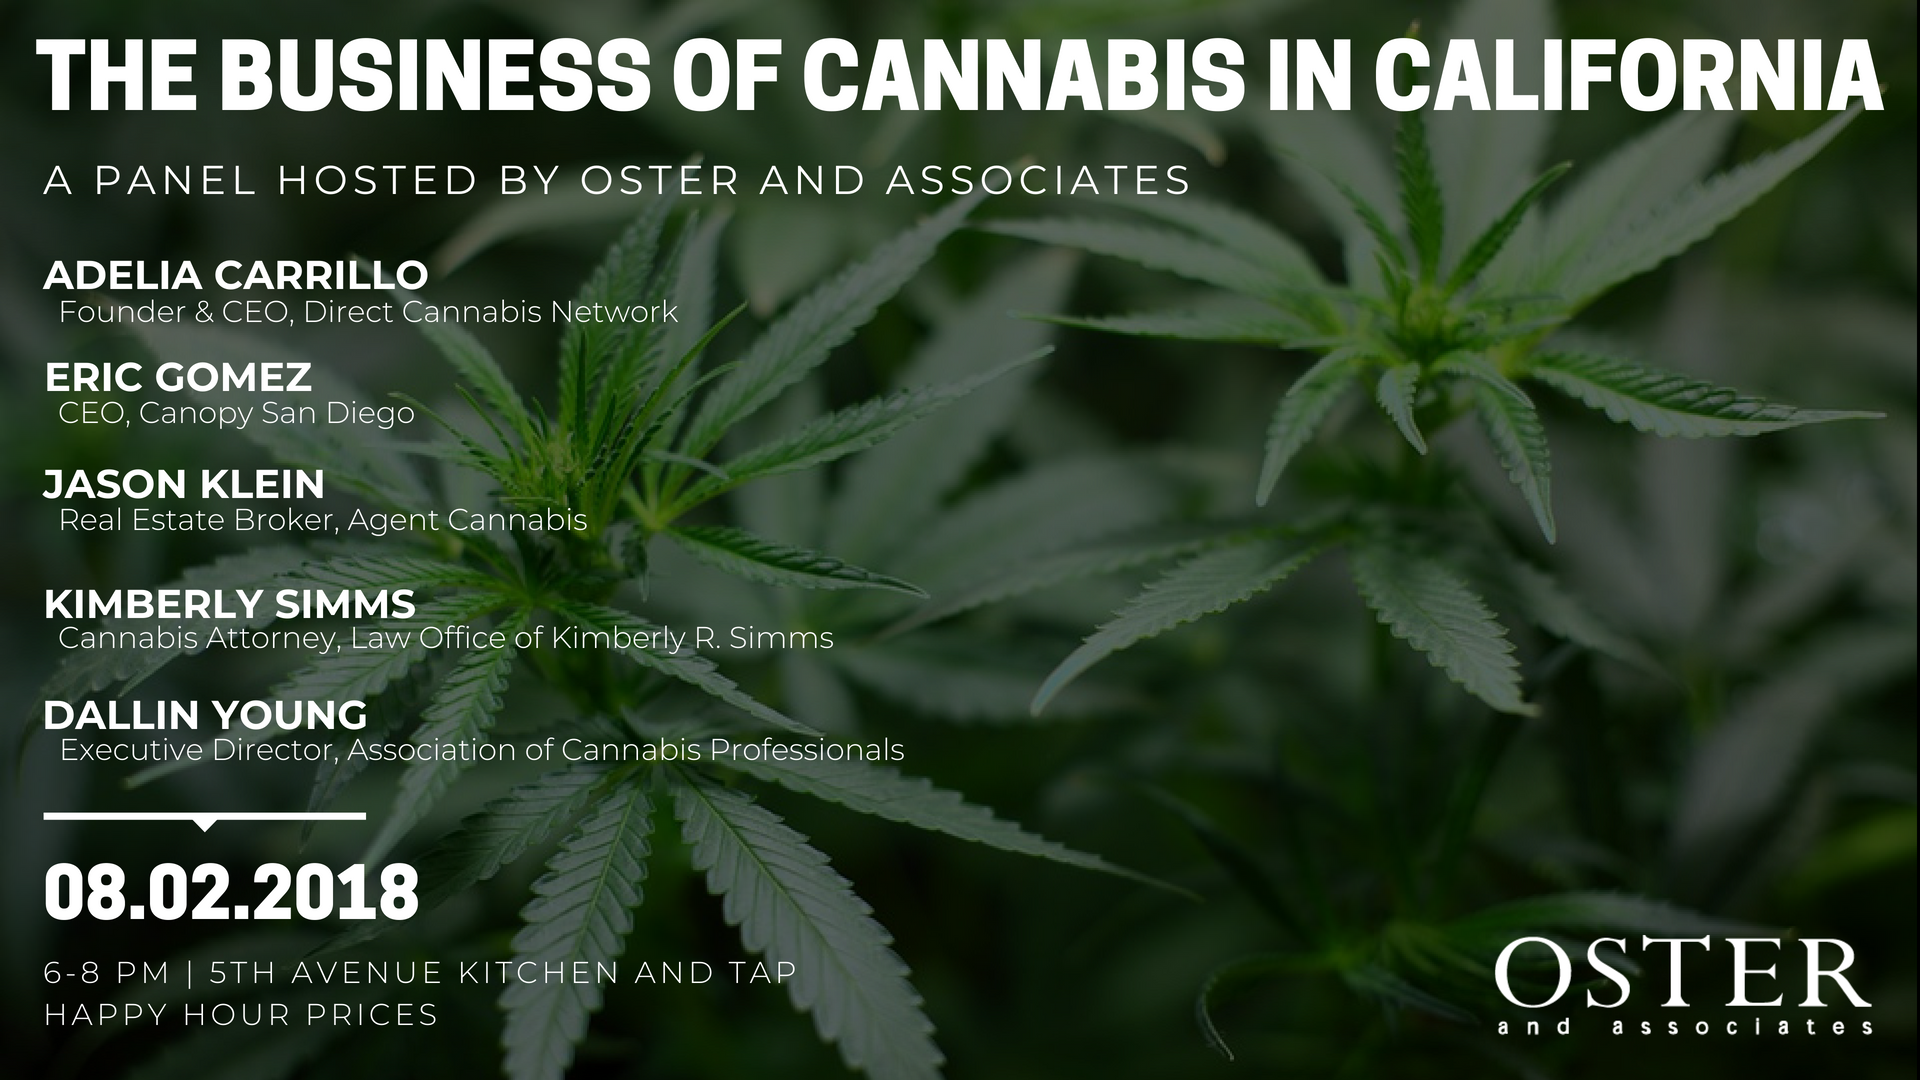 The Business of Cannabis in California